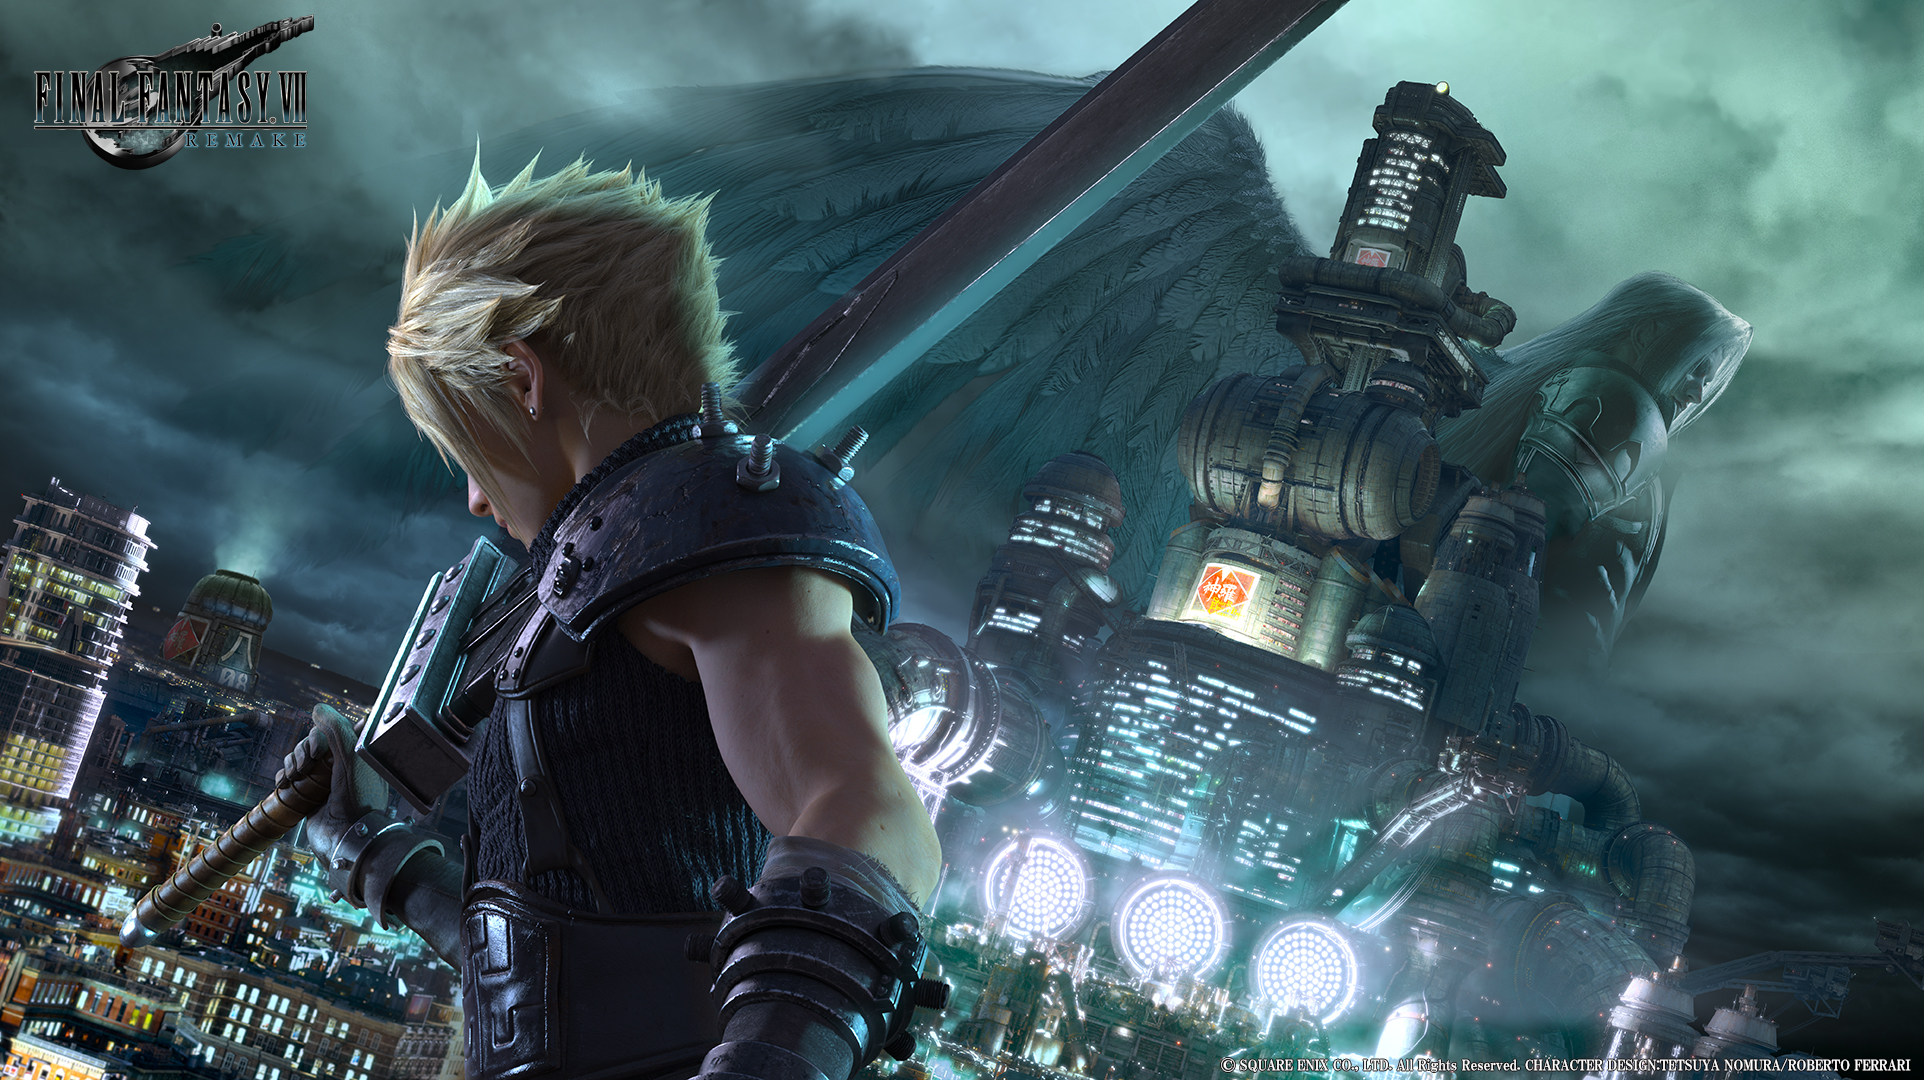 Final Fantasy 7 remake is a timed exclusive for PS4 until 2021